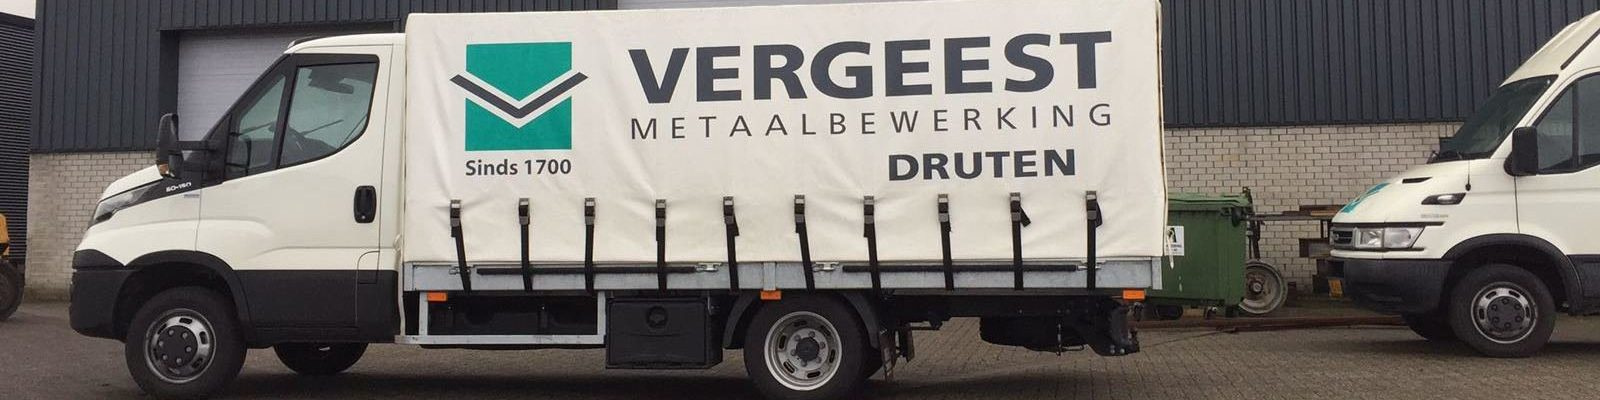 vergeest-metaaltechniek